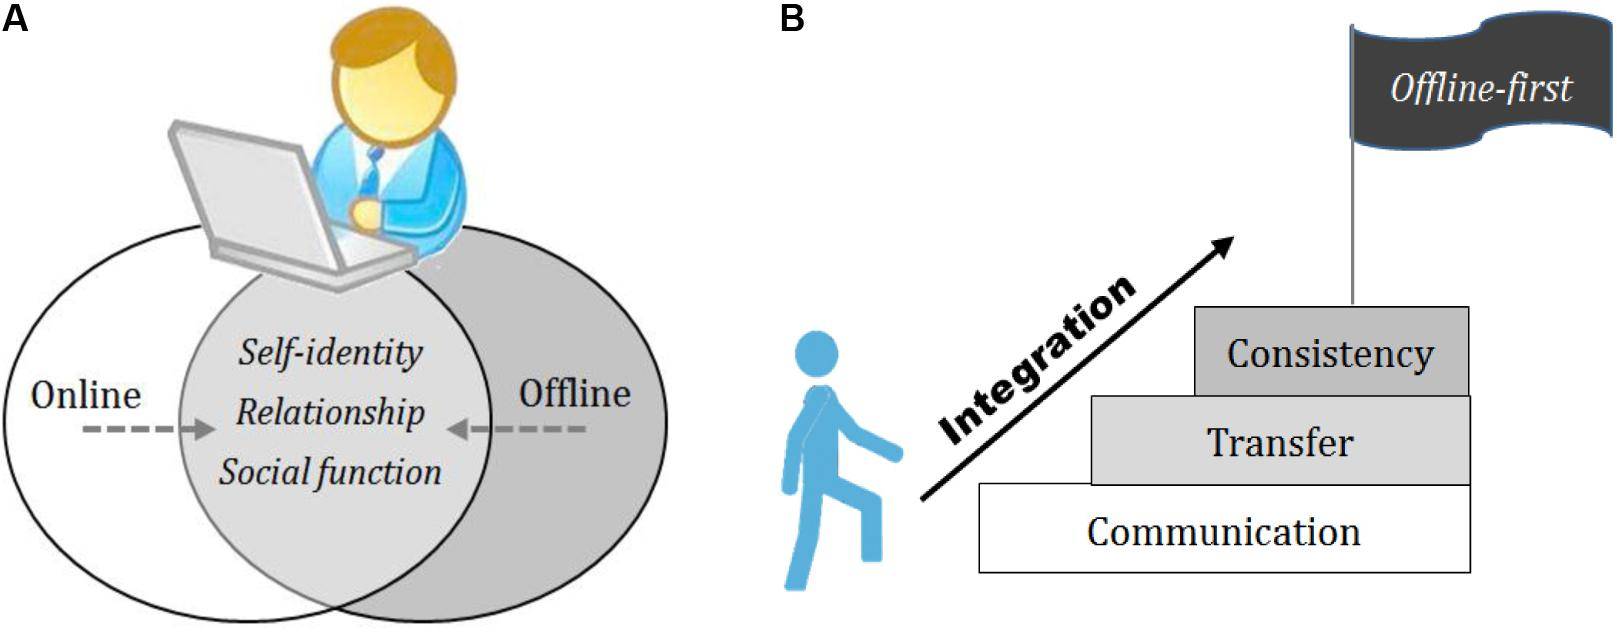 Frontiers | Development of an Online and Offline Integration